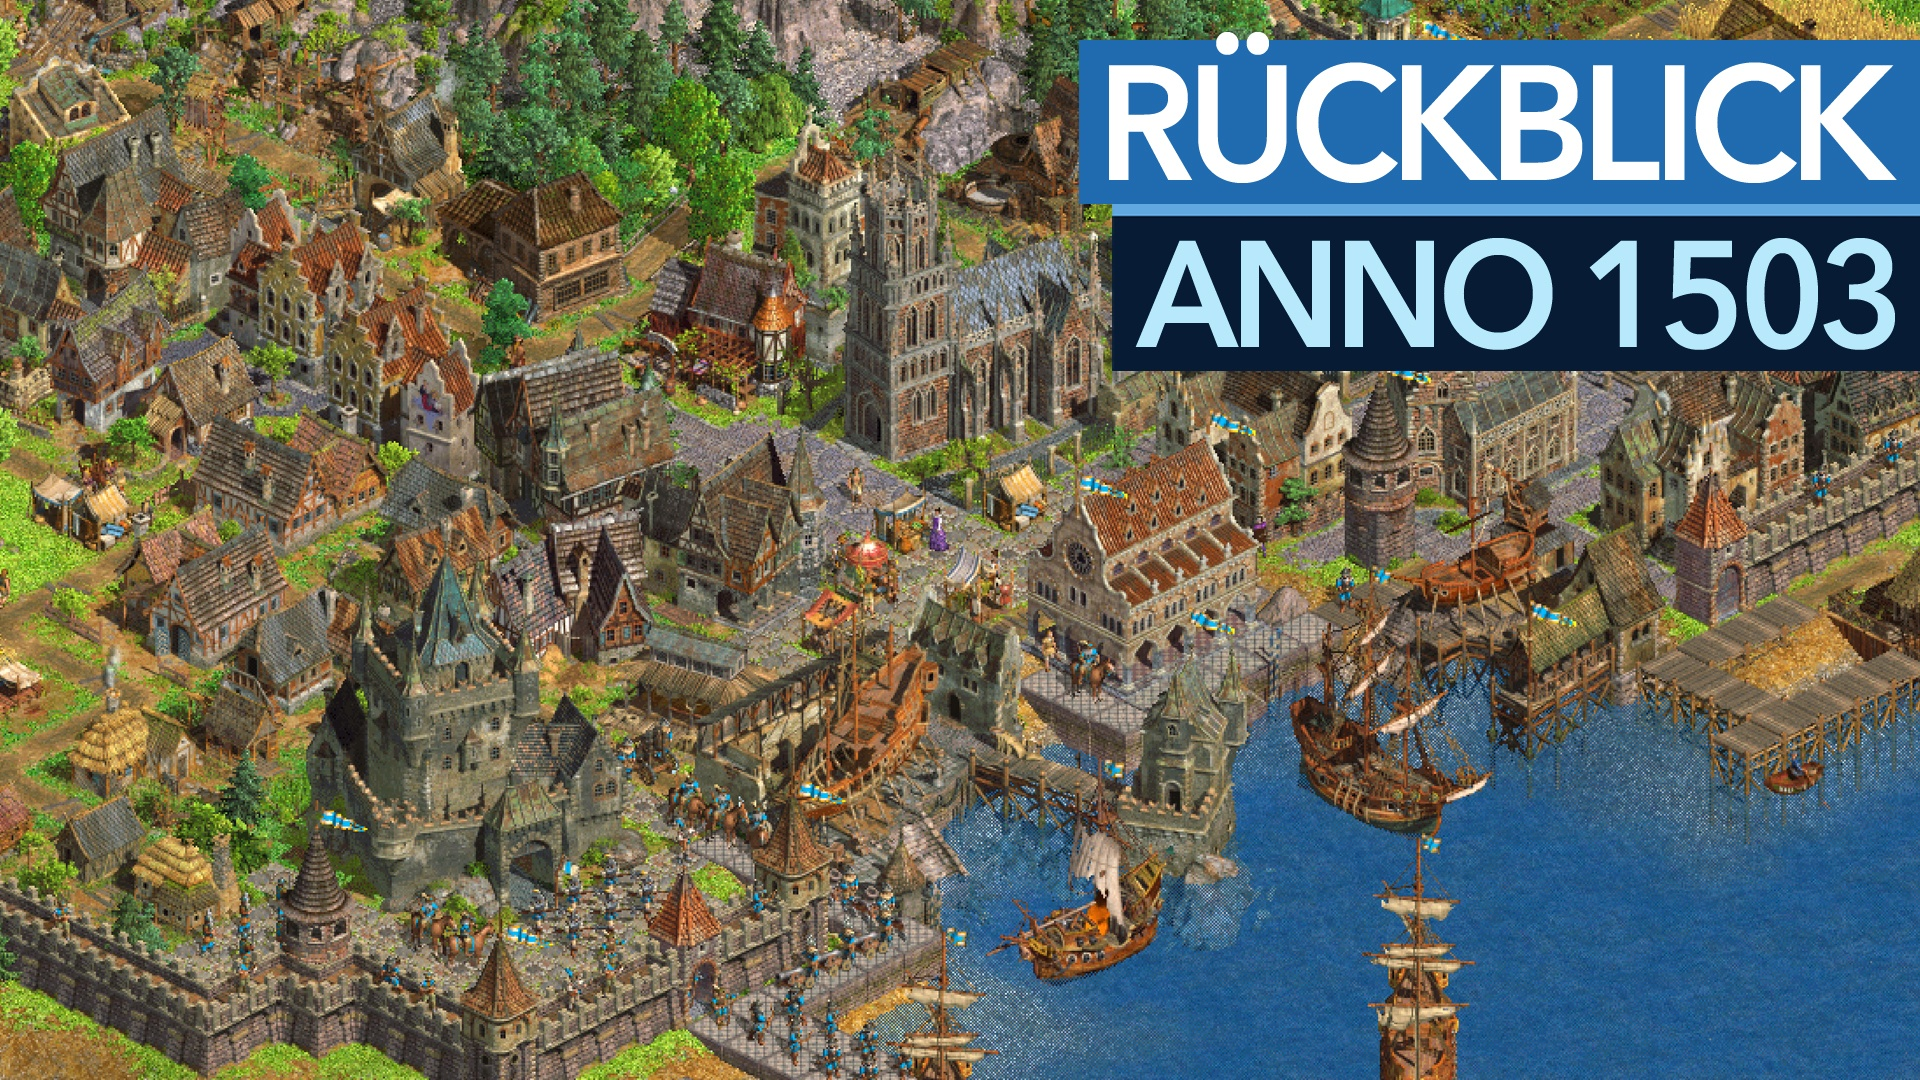 Anno 1503 im Video-Rückblick - »Der Multiplayer-Modus war ein Skandal« -  GameStar